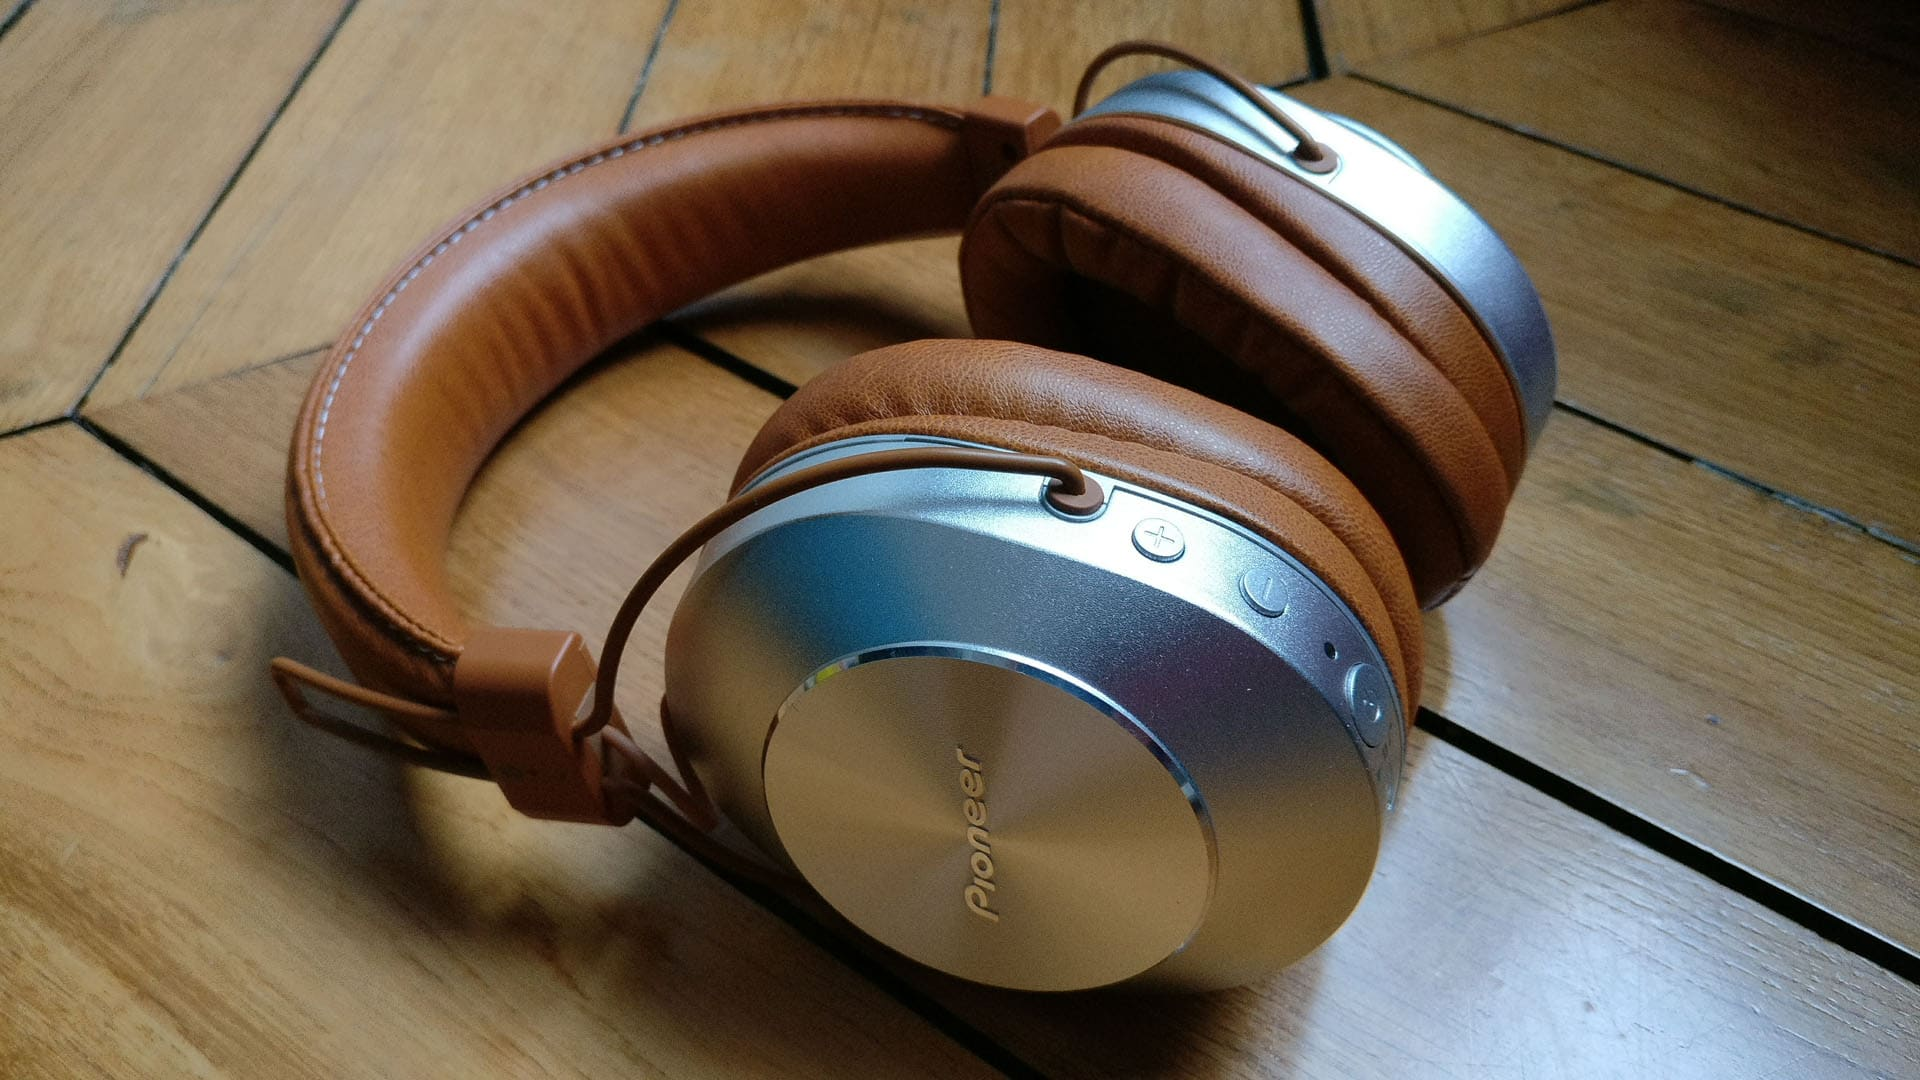 Comparatif Casques Audio 2019 Meilleur Avis Test Top 10